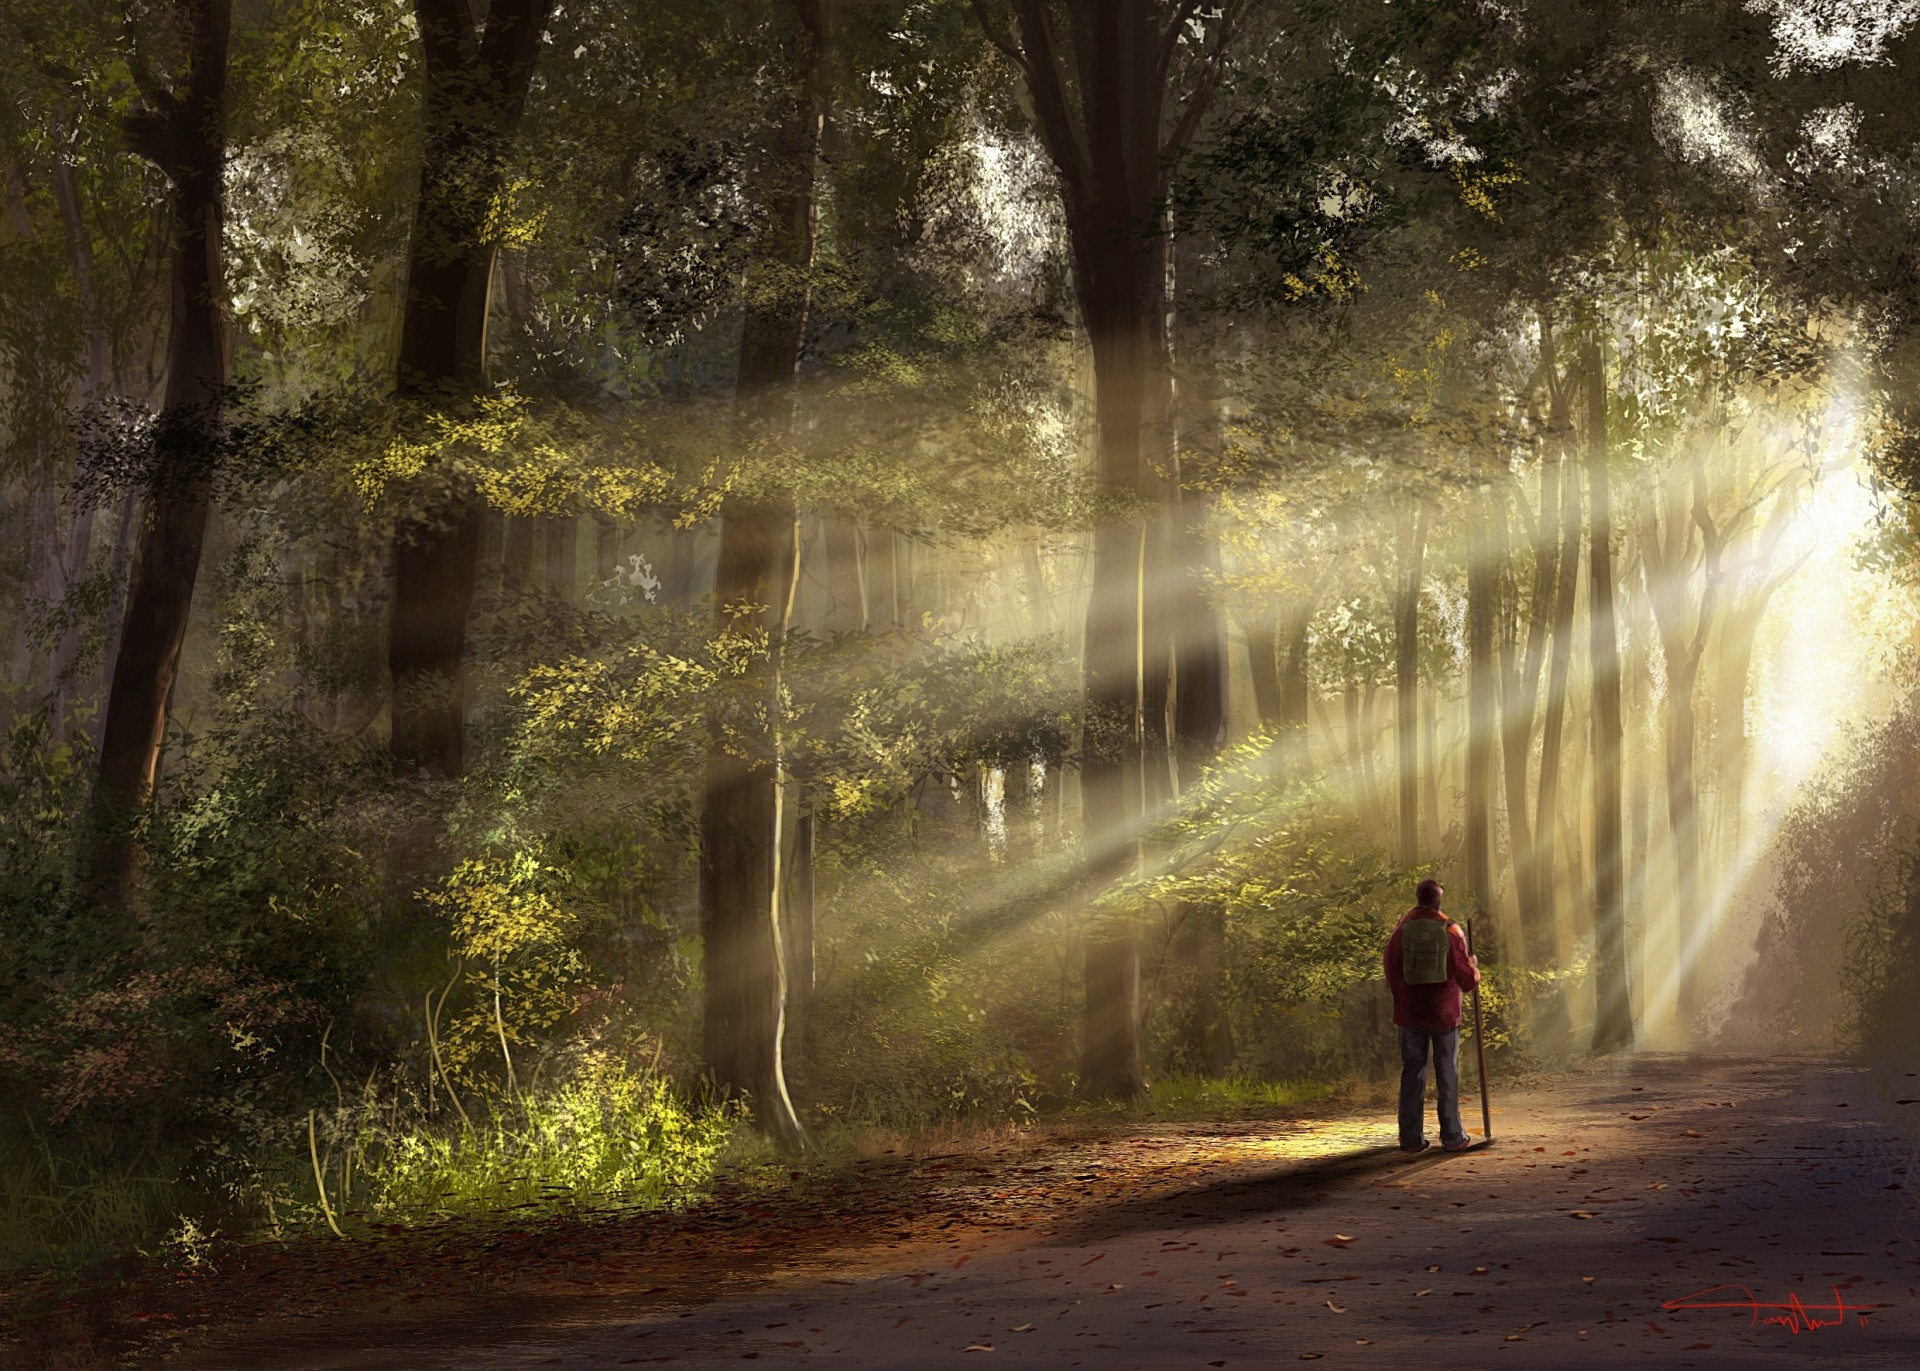 a research on the real nature of god Green is good for you psychologists' research explains the mental and physical restoration we get from nature--and has important implications for how we build our homes, work environments and cities.